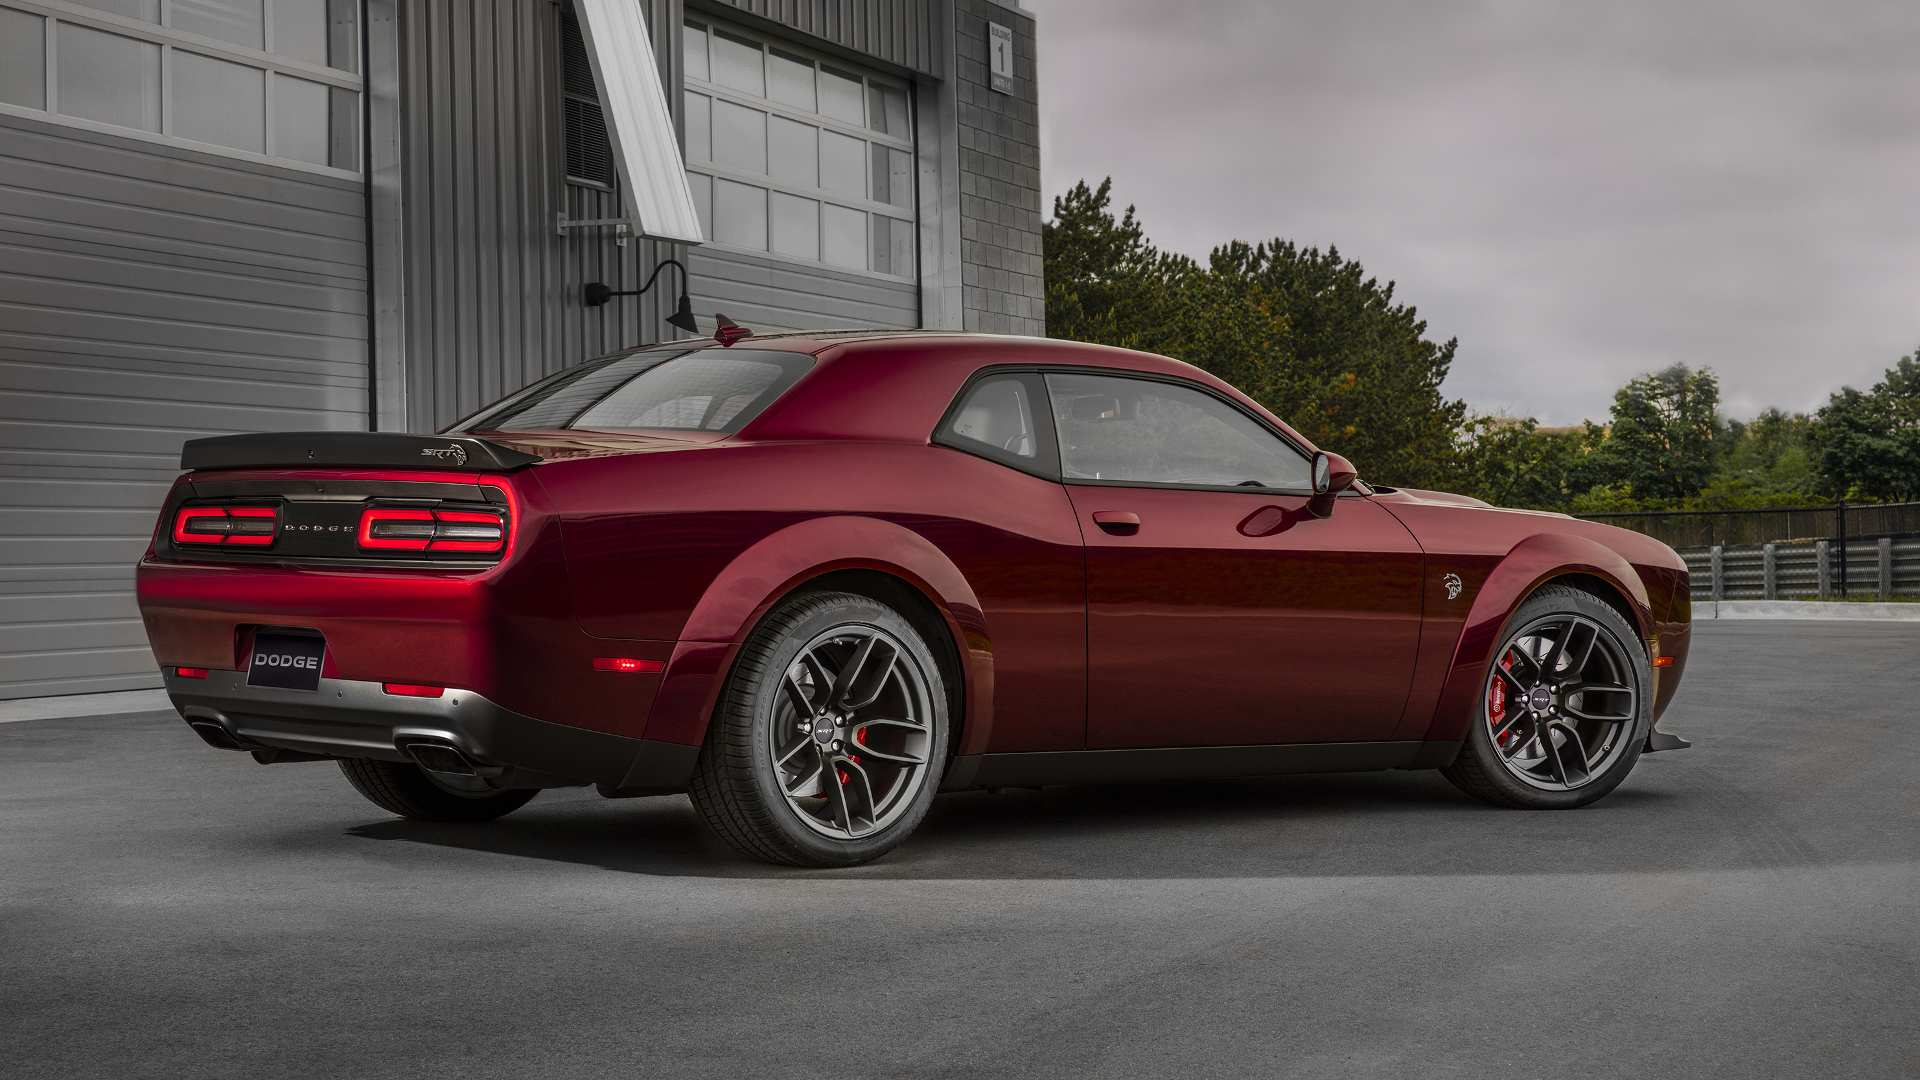 29 All New Dodge Challenger New Model 2020 Price and Release date